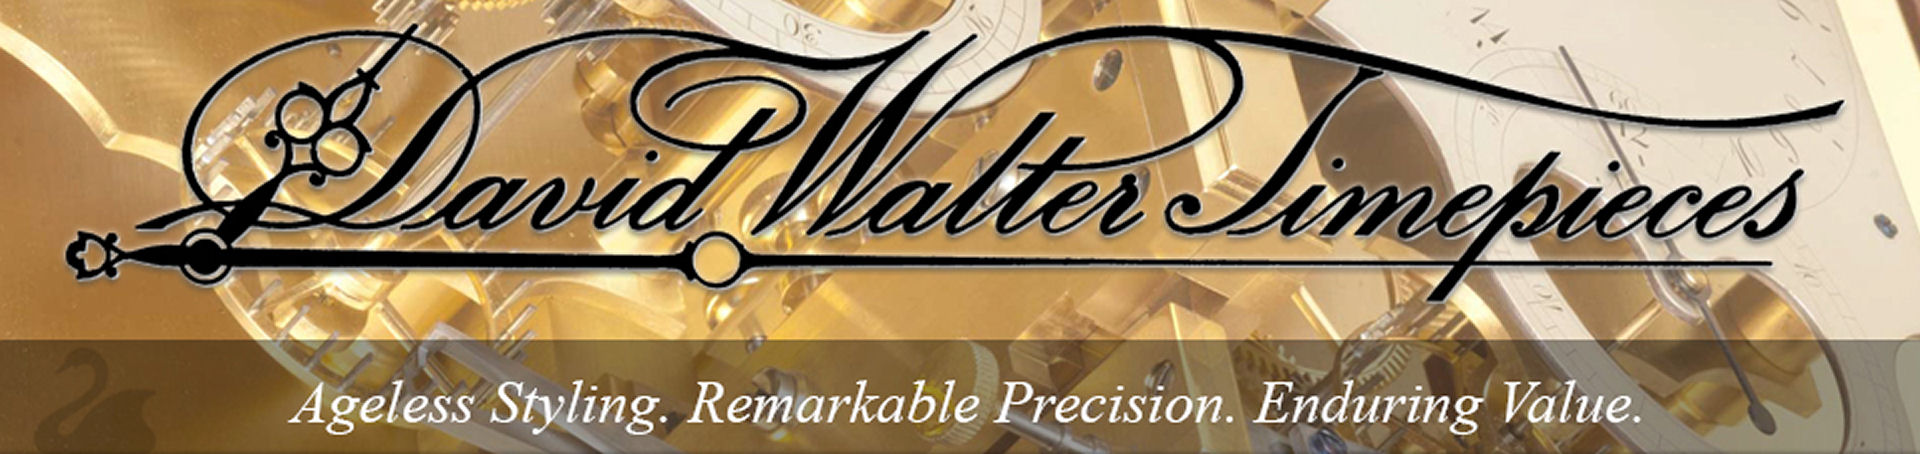 """David Walter Timpieces 